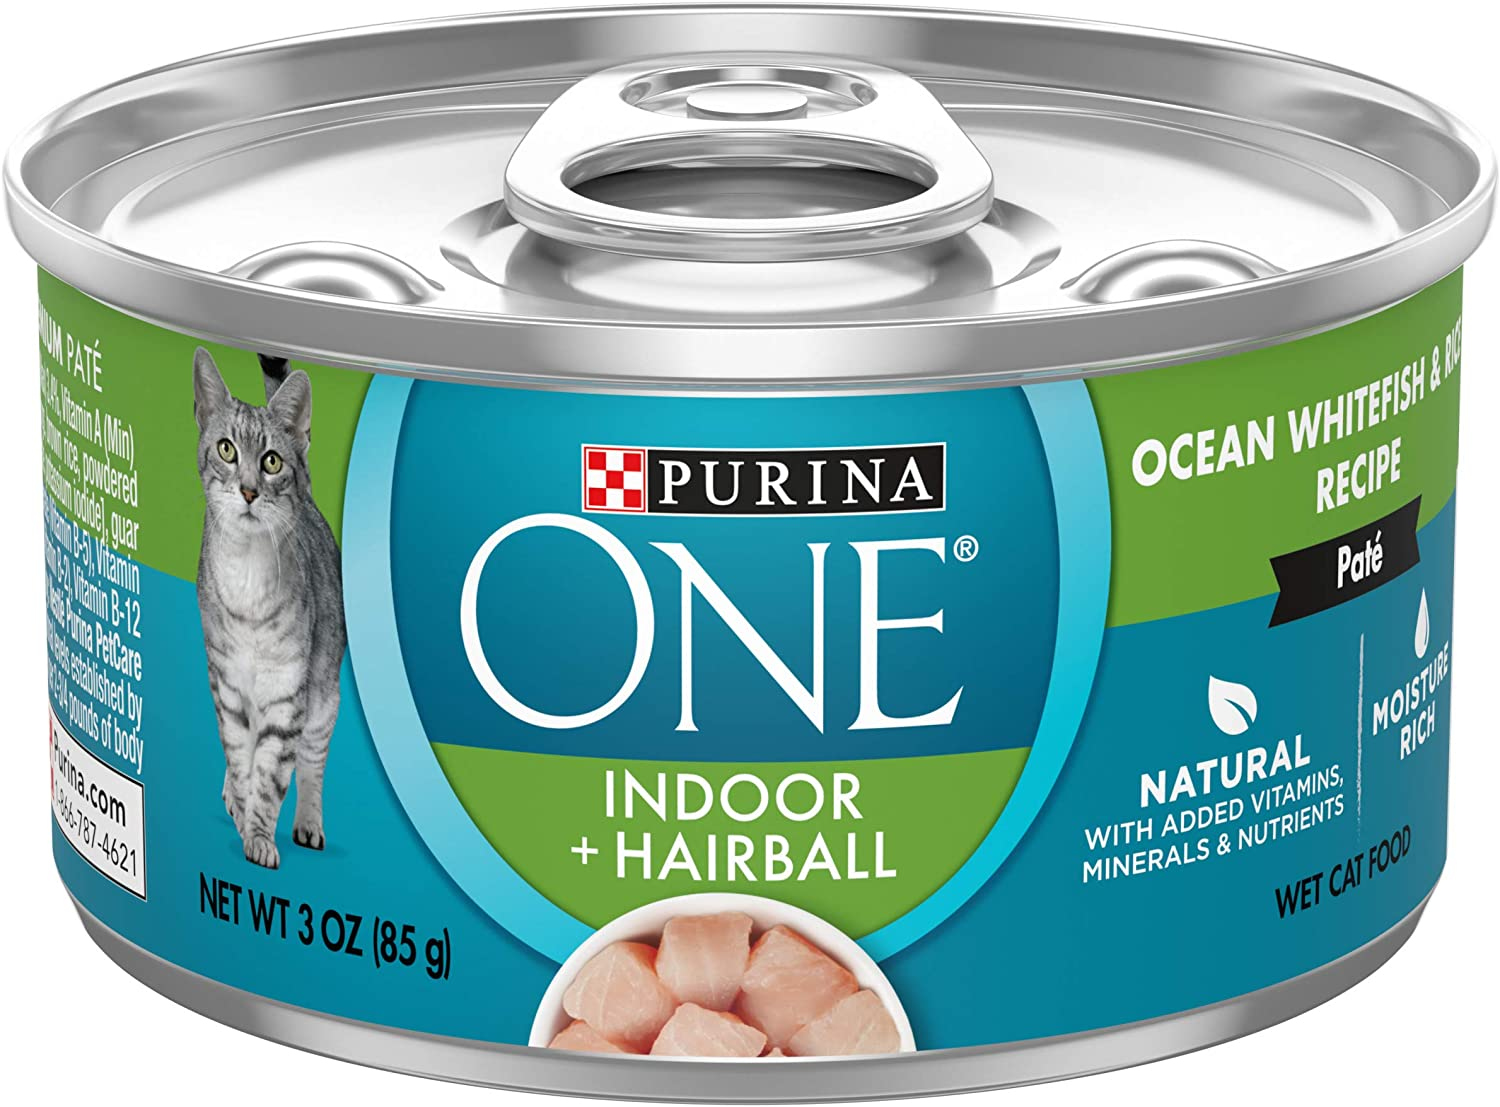 Purina ONE Indoor, Natural, High Protein Pate Wet Cat Food, Indoor Advantage Ocean Whitefish & Rice - (12) 3 oz. Pull-Top Cans